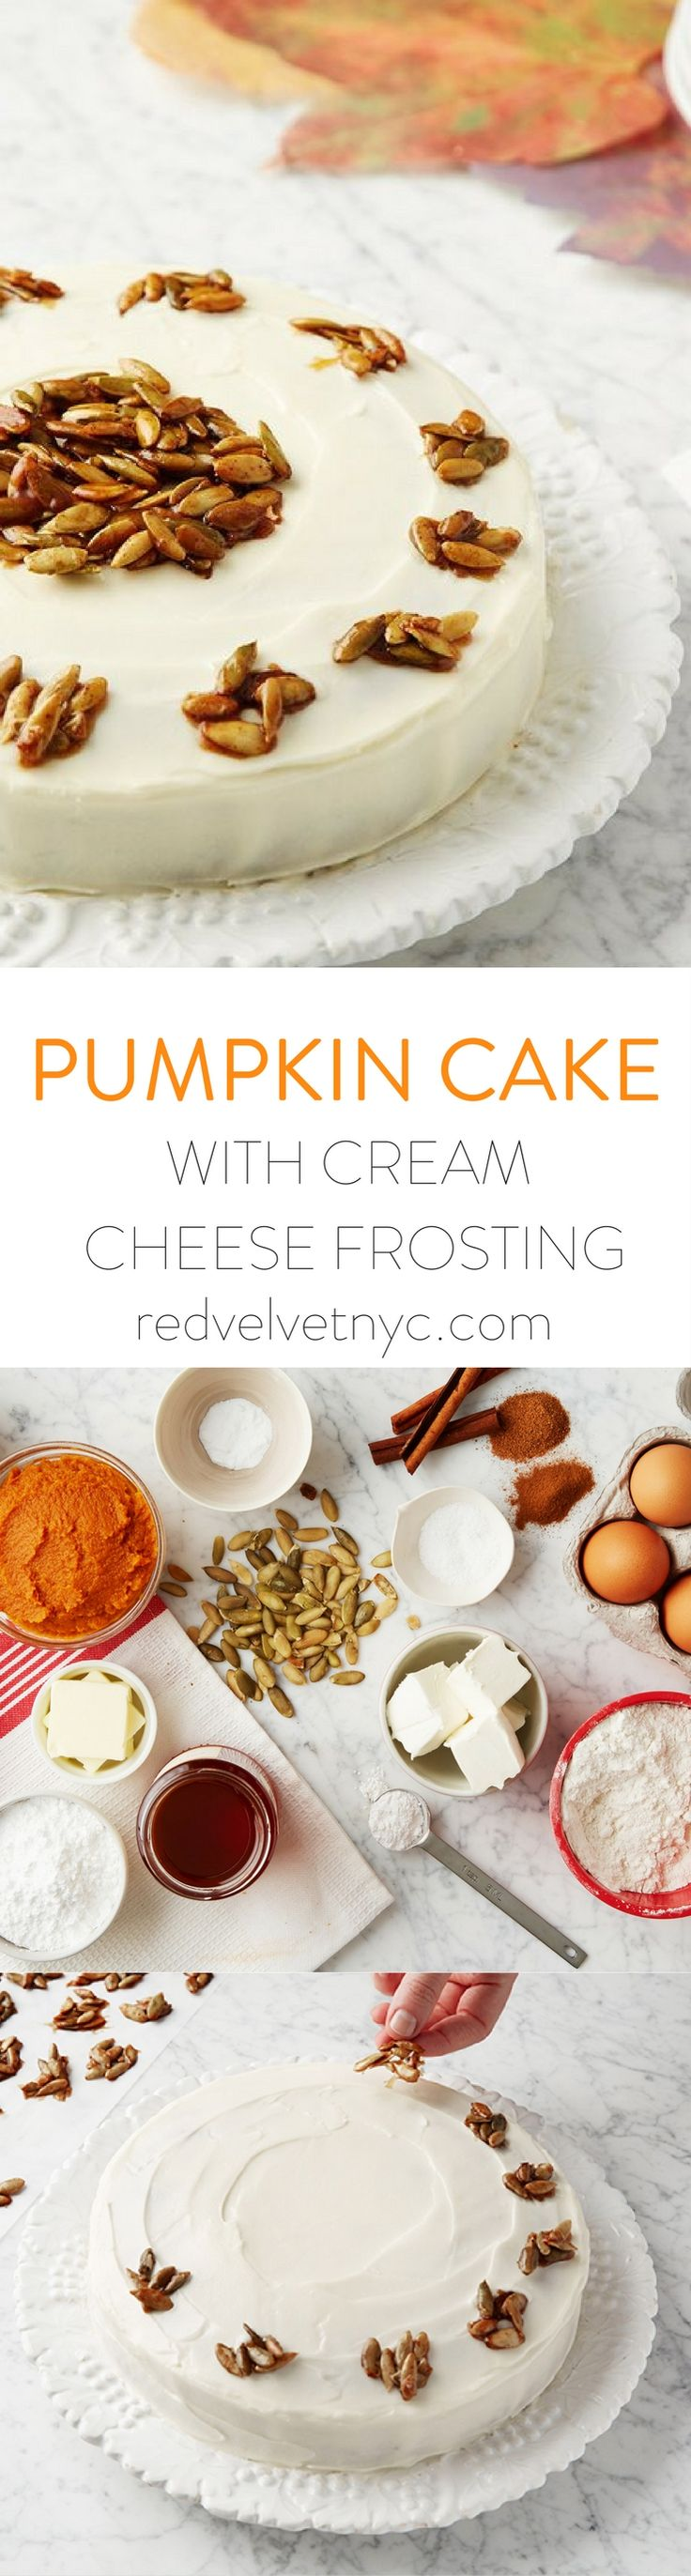 Homemade Pumpkin Cake with Cream Cheese Frosting- Spice up your fall menu with this delicious and moist Pumpkin Cake! Our Baking kit comes with an easy-to-follow recipe card and all the ingredients you need. Receive 15% off your first box with code PINTEREST15 !